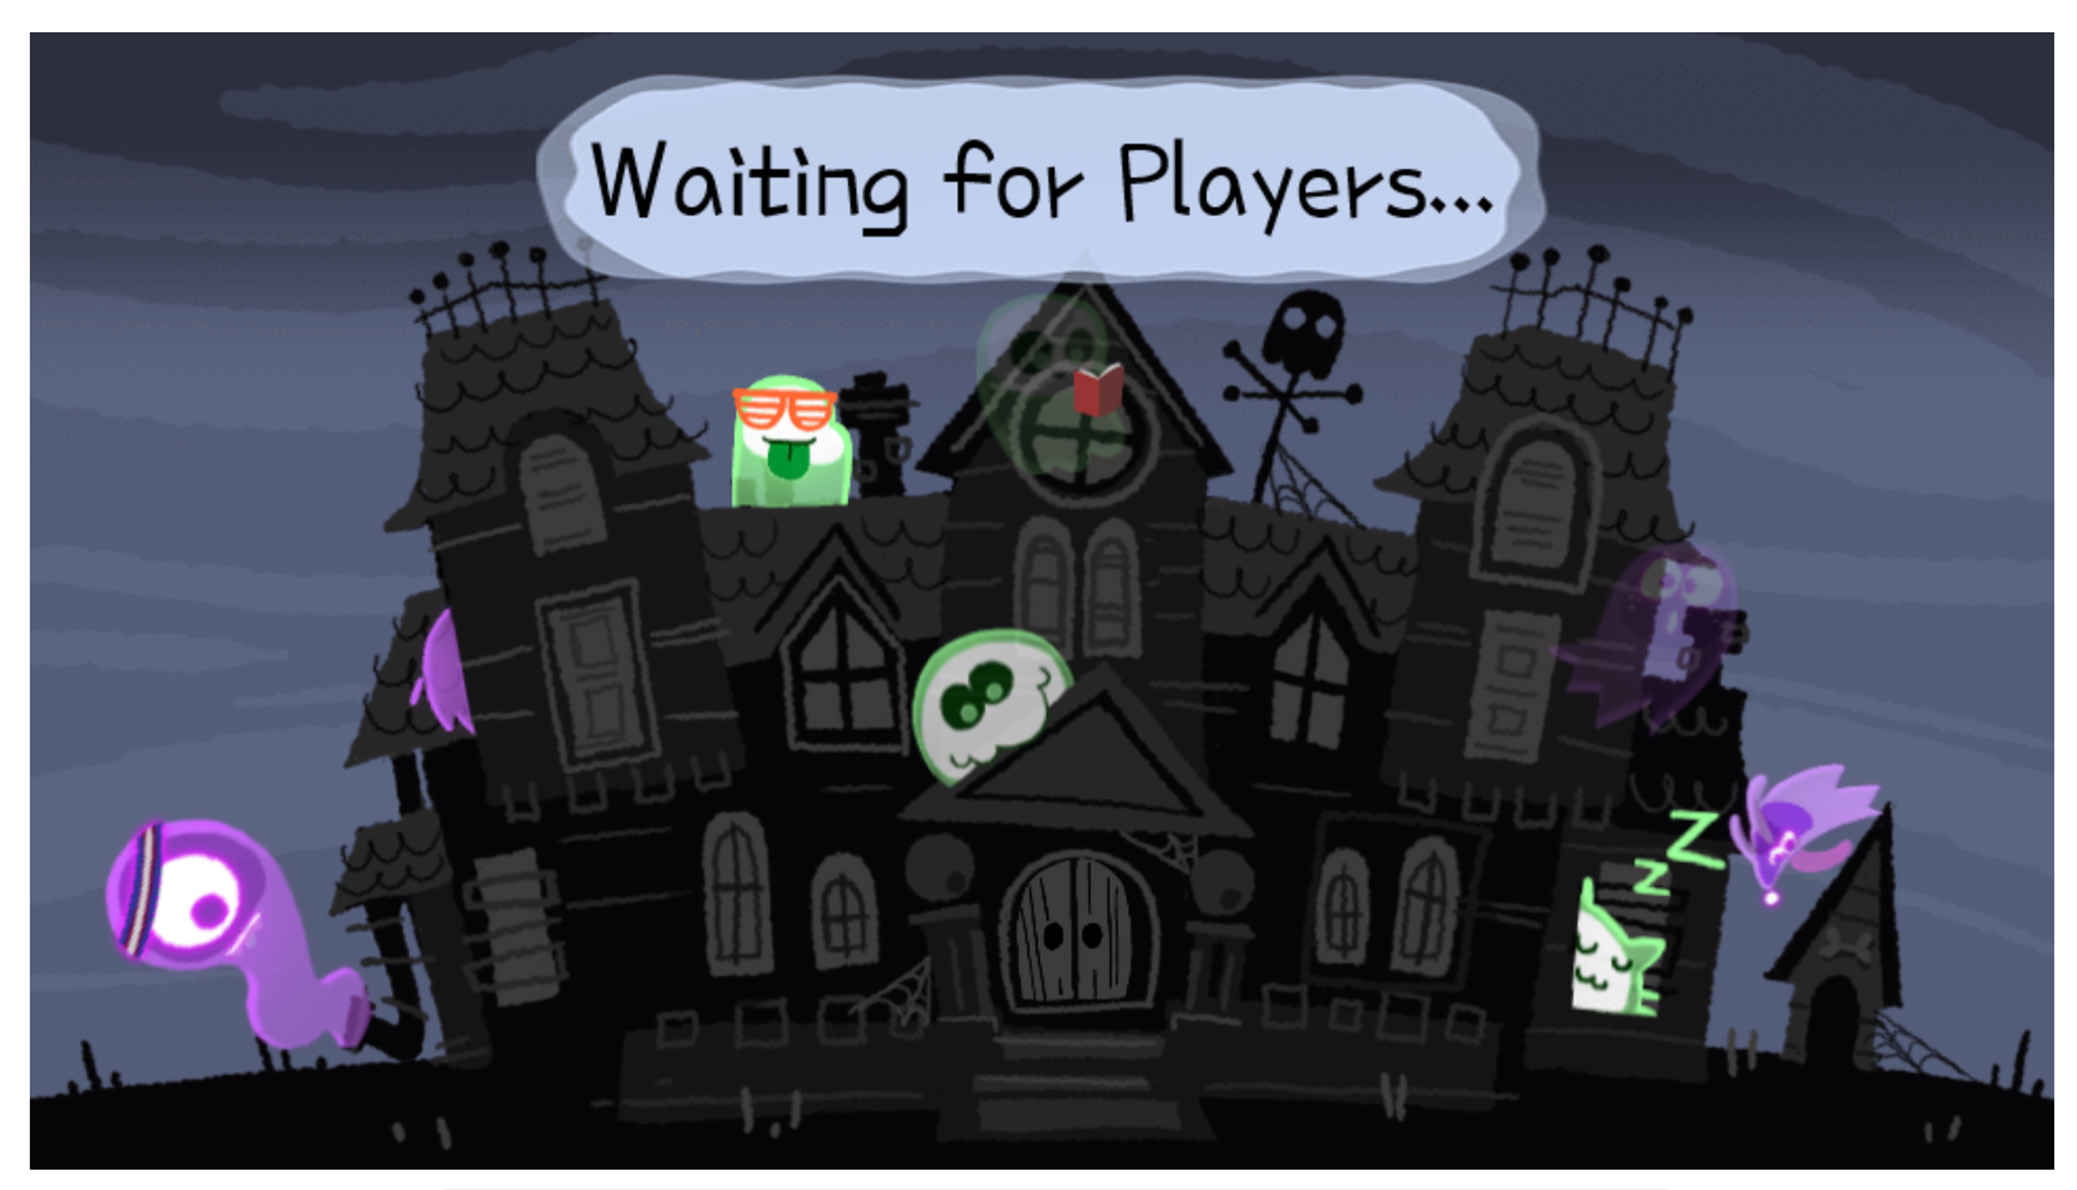 Google releases frightfully addictive multiplayer Doodle game for Halloween